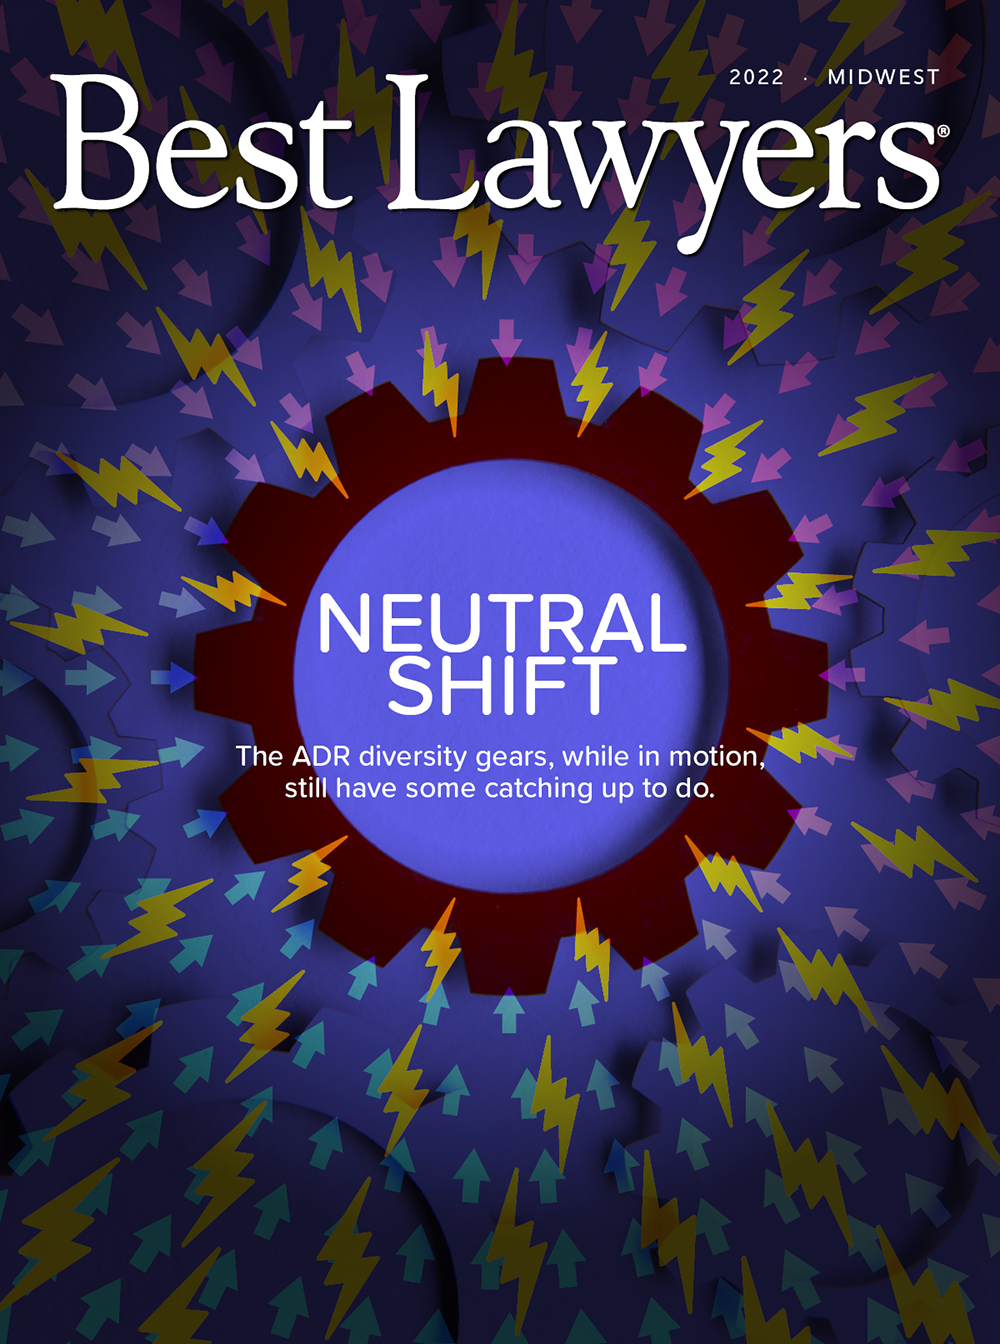 Regional Edition The Midwest's Best Lawyers | Digital Edition